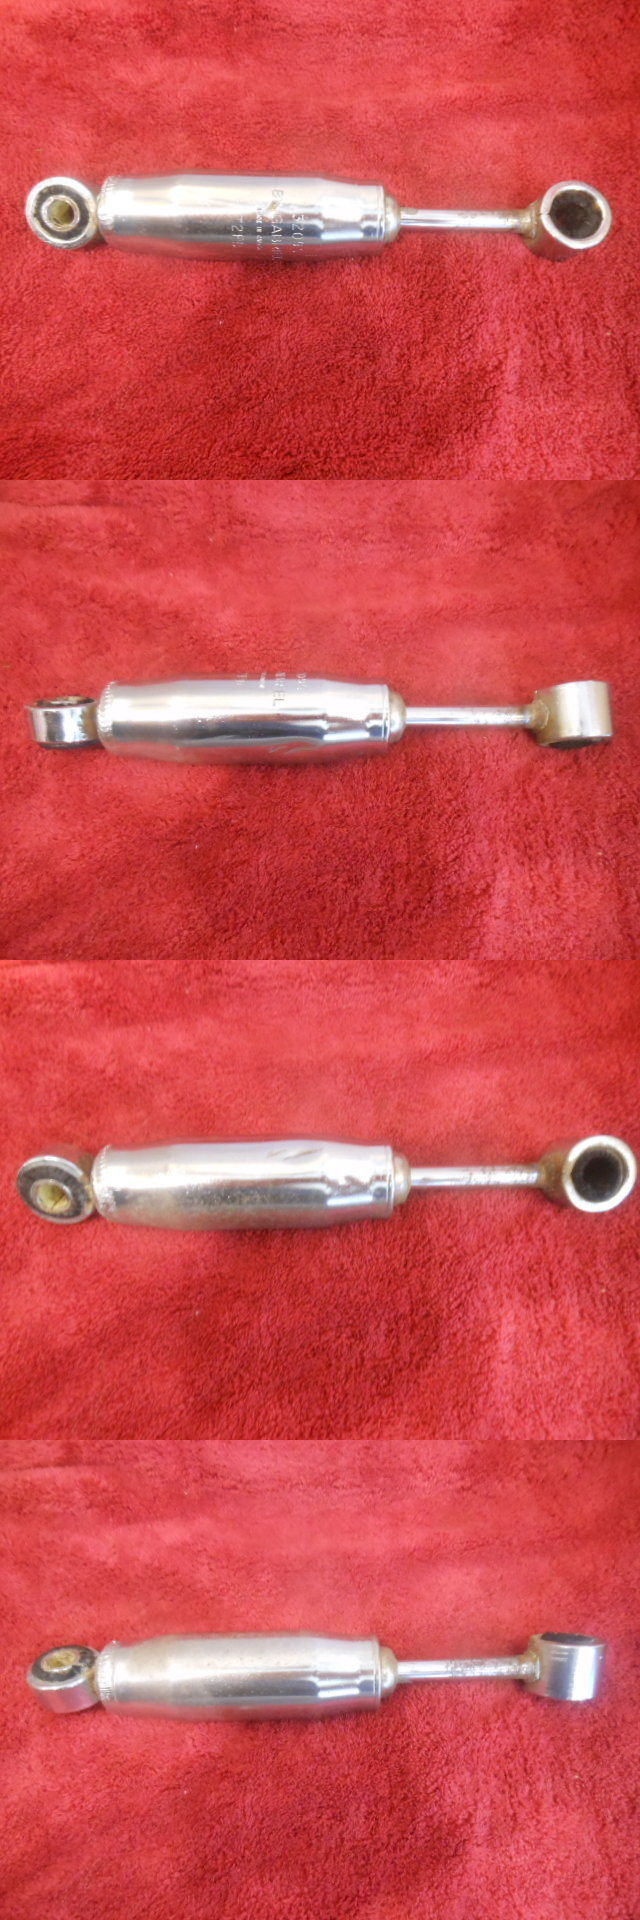 Snowmobile Parts 23834: Used Rupp Chrome Shock Nitro Magnum Rally ...